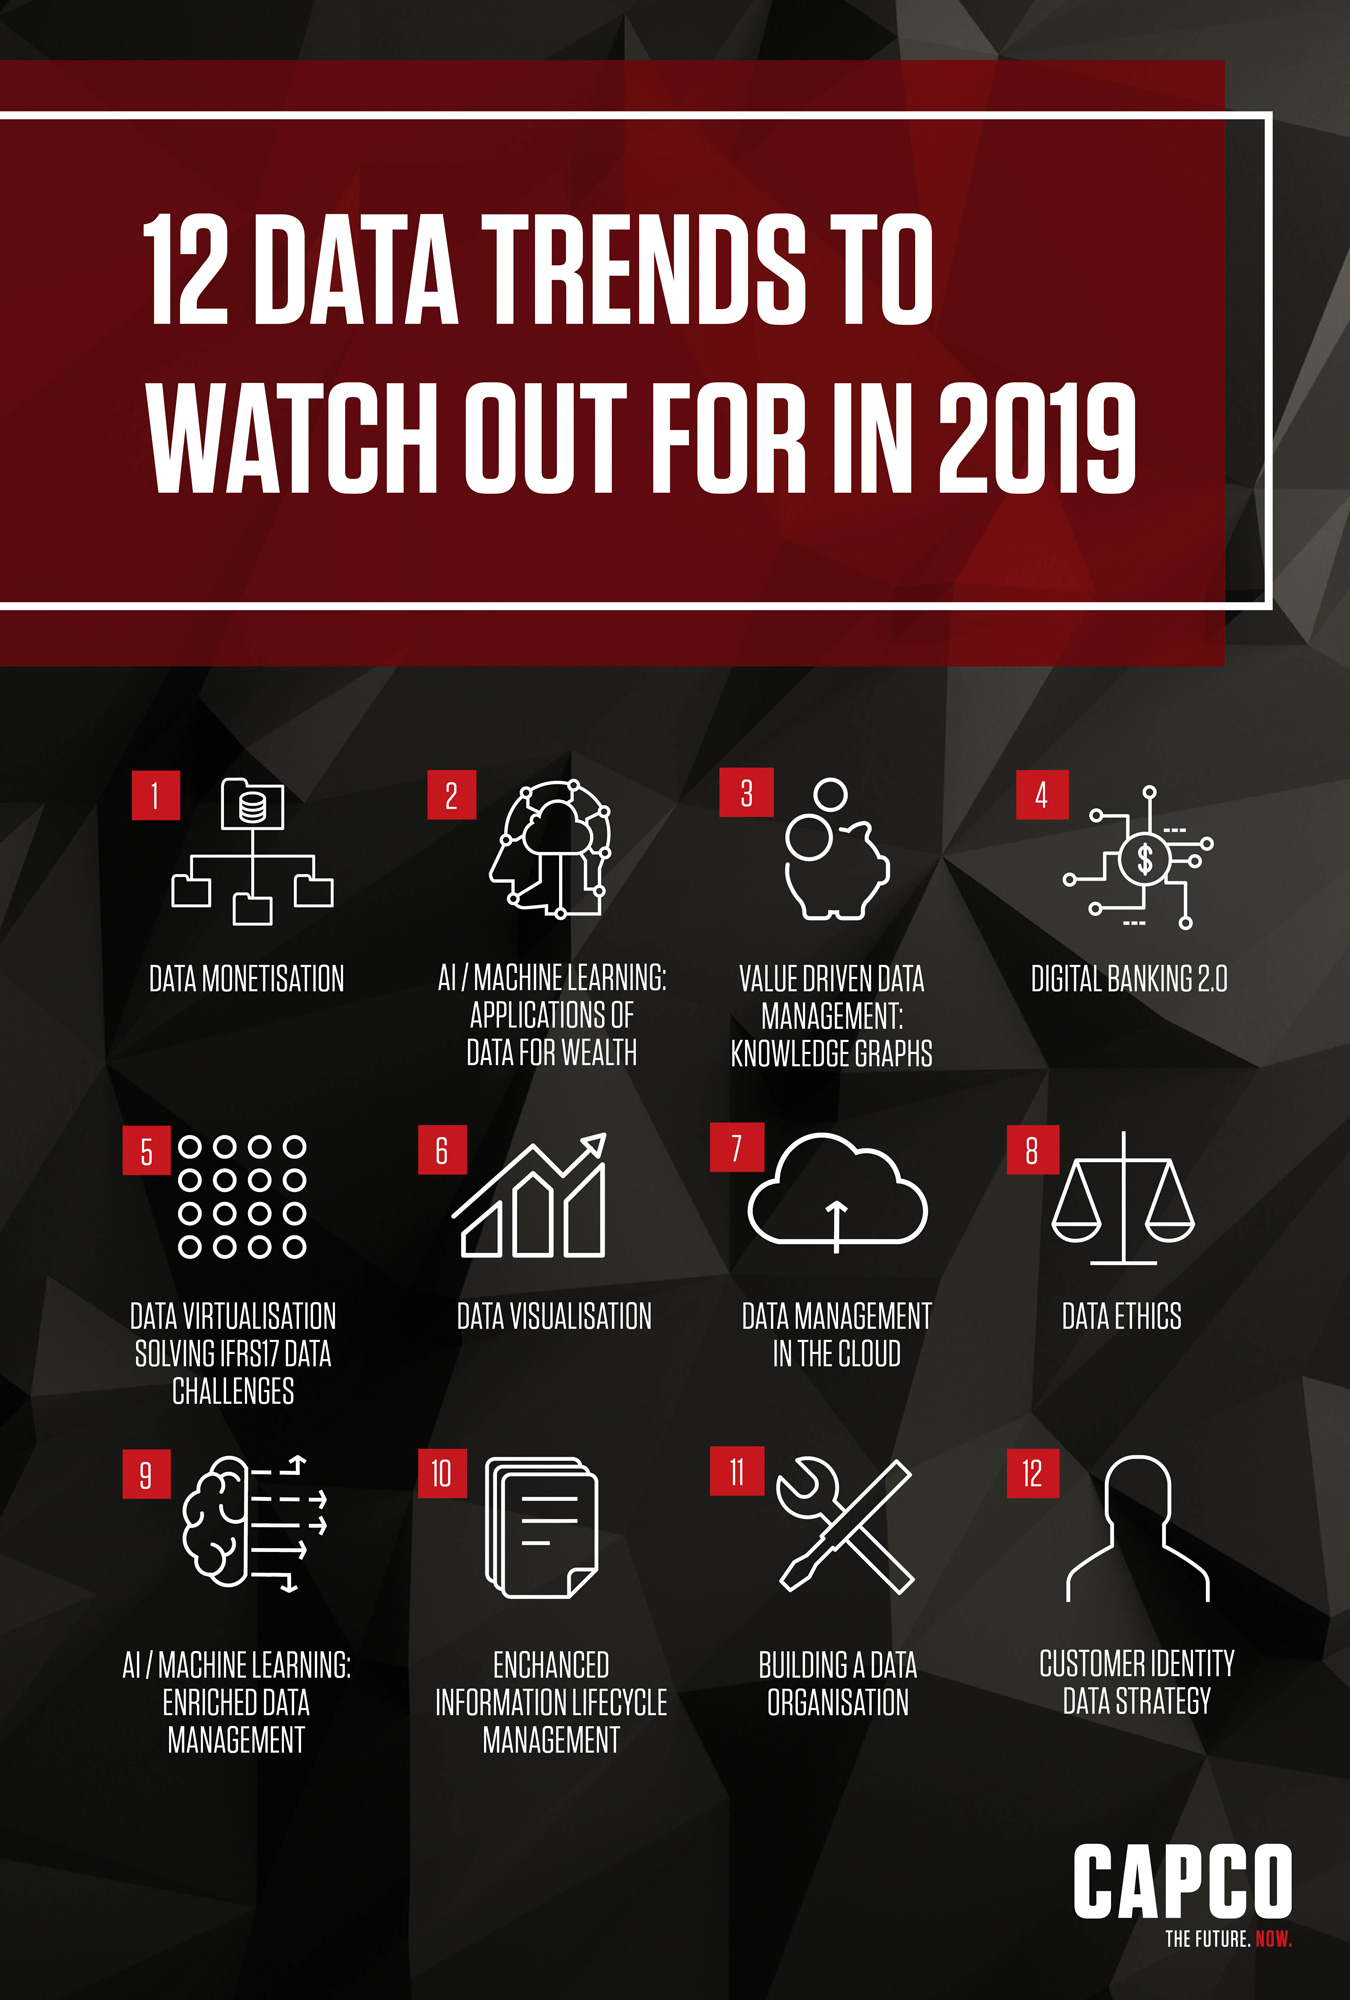 12 data trends for 2019